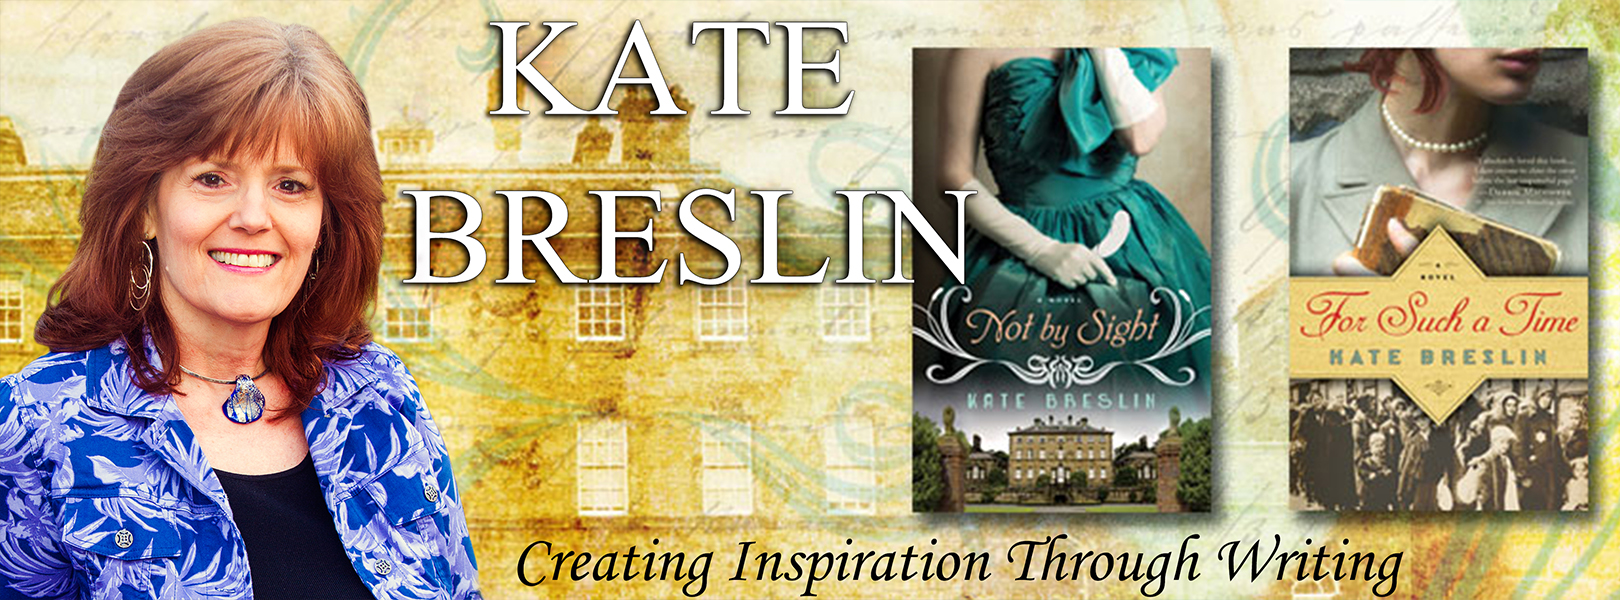 Kate Breslin Northwest Author